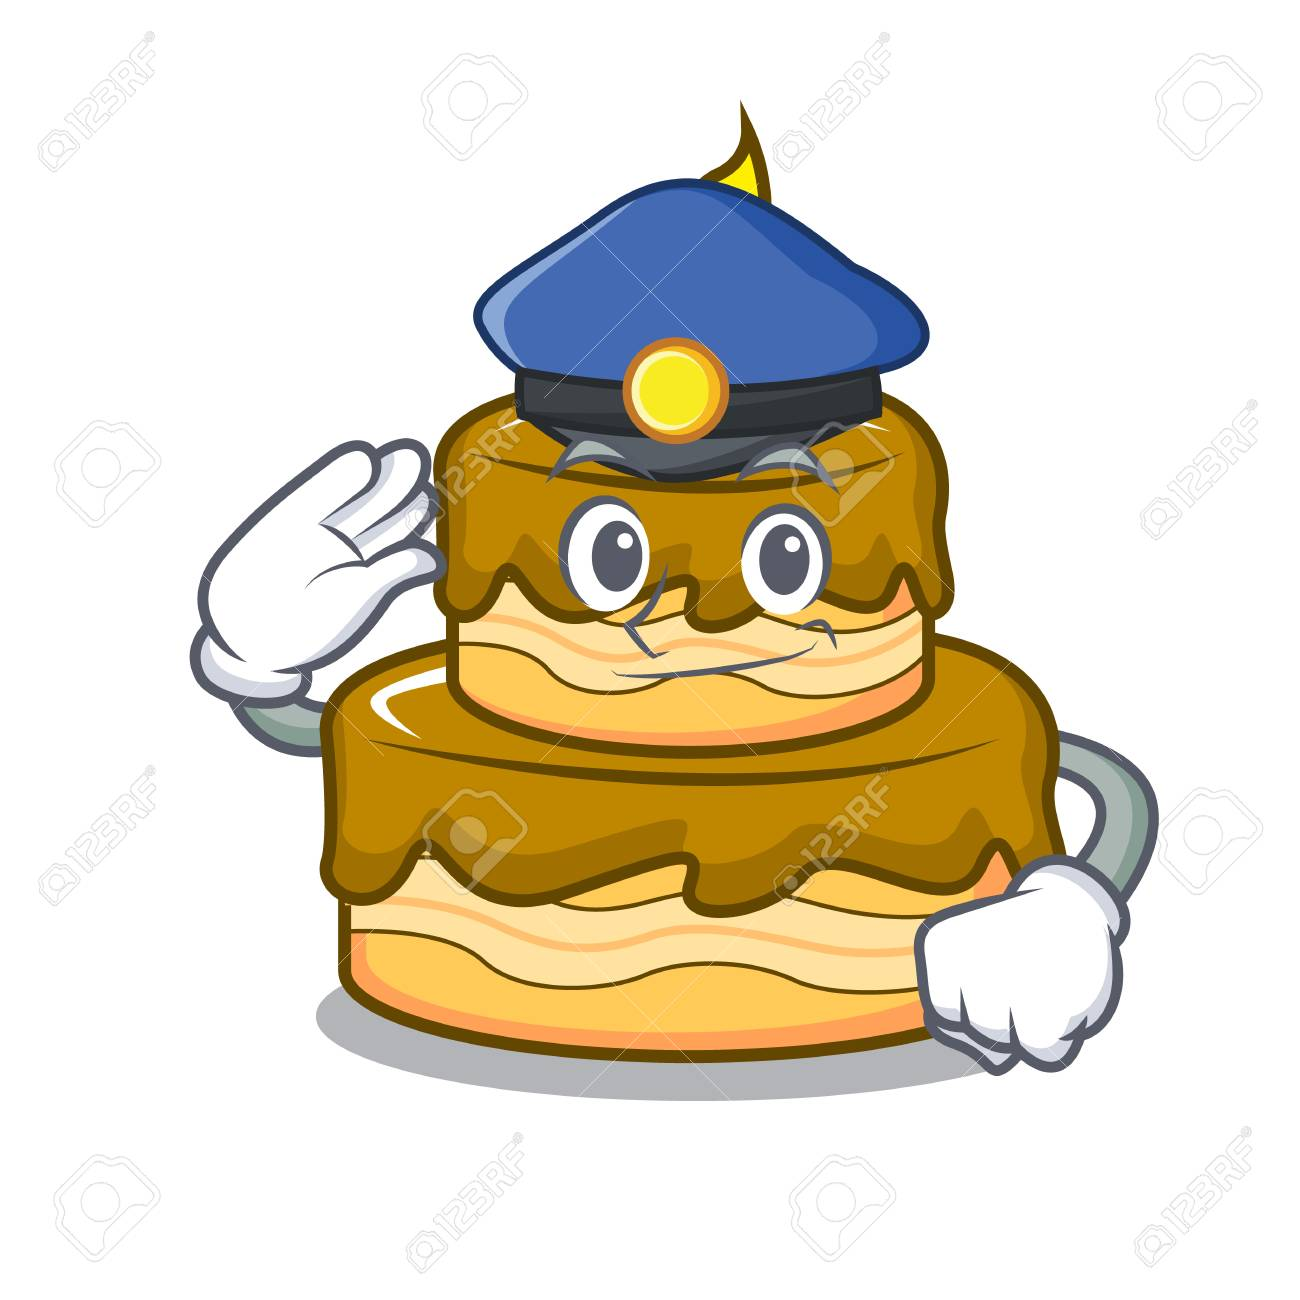 Awesome Police Birthday Cake Character Cartoon Vector Illustration Royalty Funny Birthday Cards Online Alyptdamsfinfo